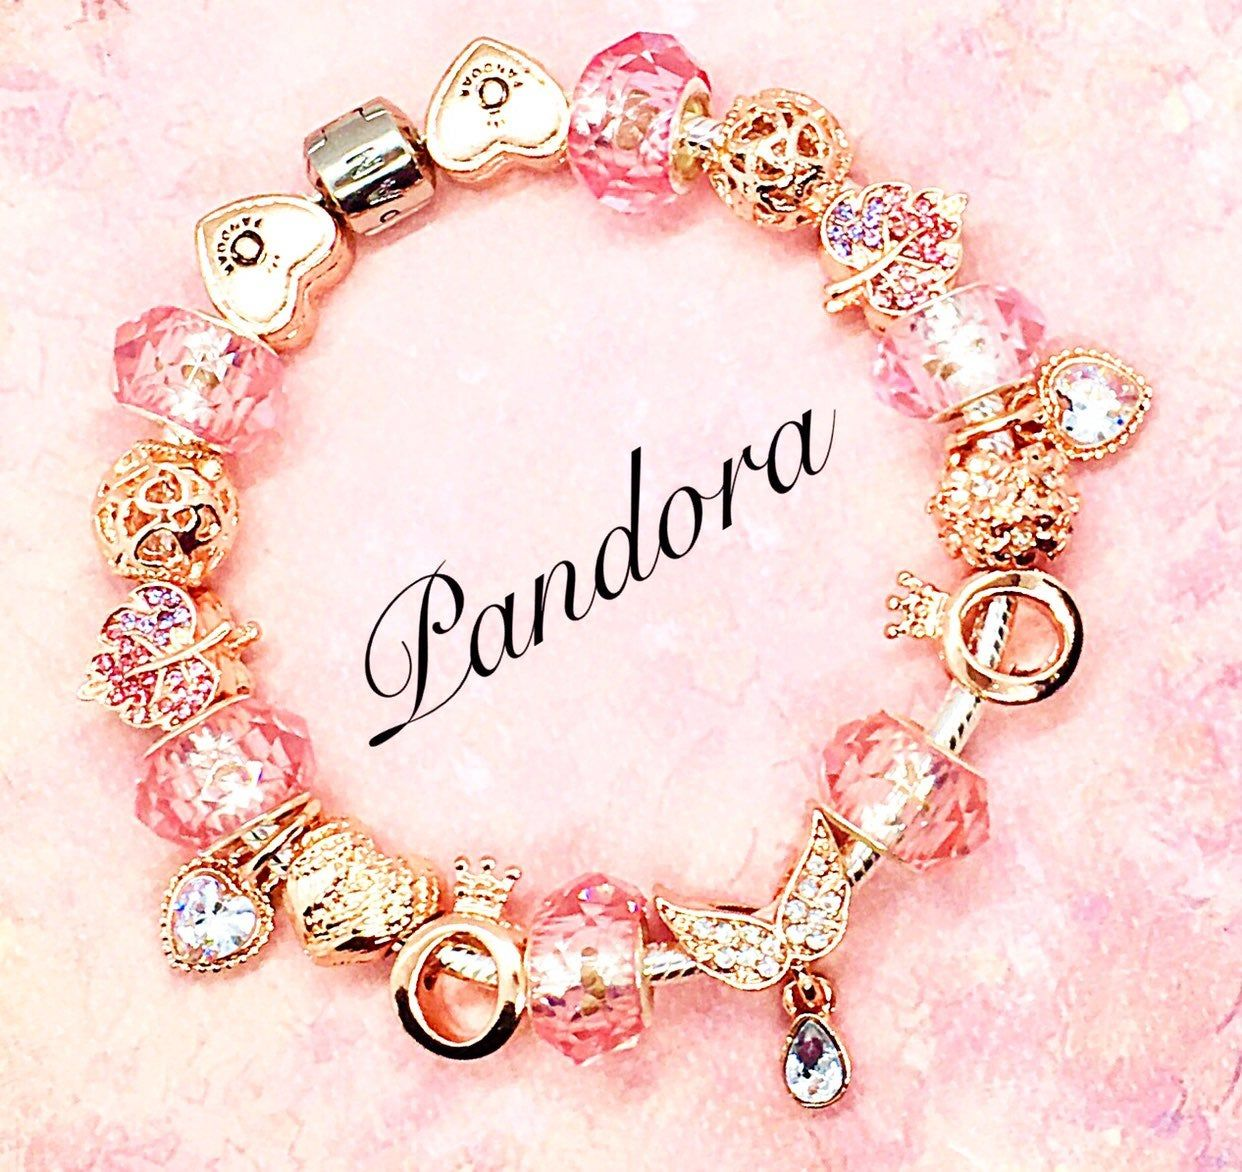 Authentic Pandora Sterling Sliver Bracelet Stamped S925 Ale Inside The Clasp Angel Wings Bracelet Pandora Jewelry Charms Pandora Jewelry Box Rose Gold Charms